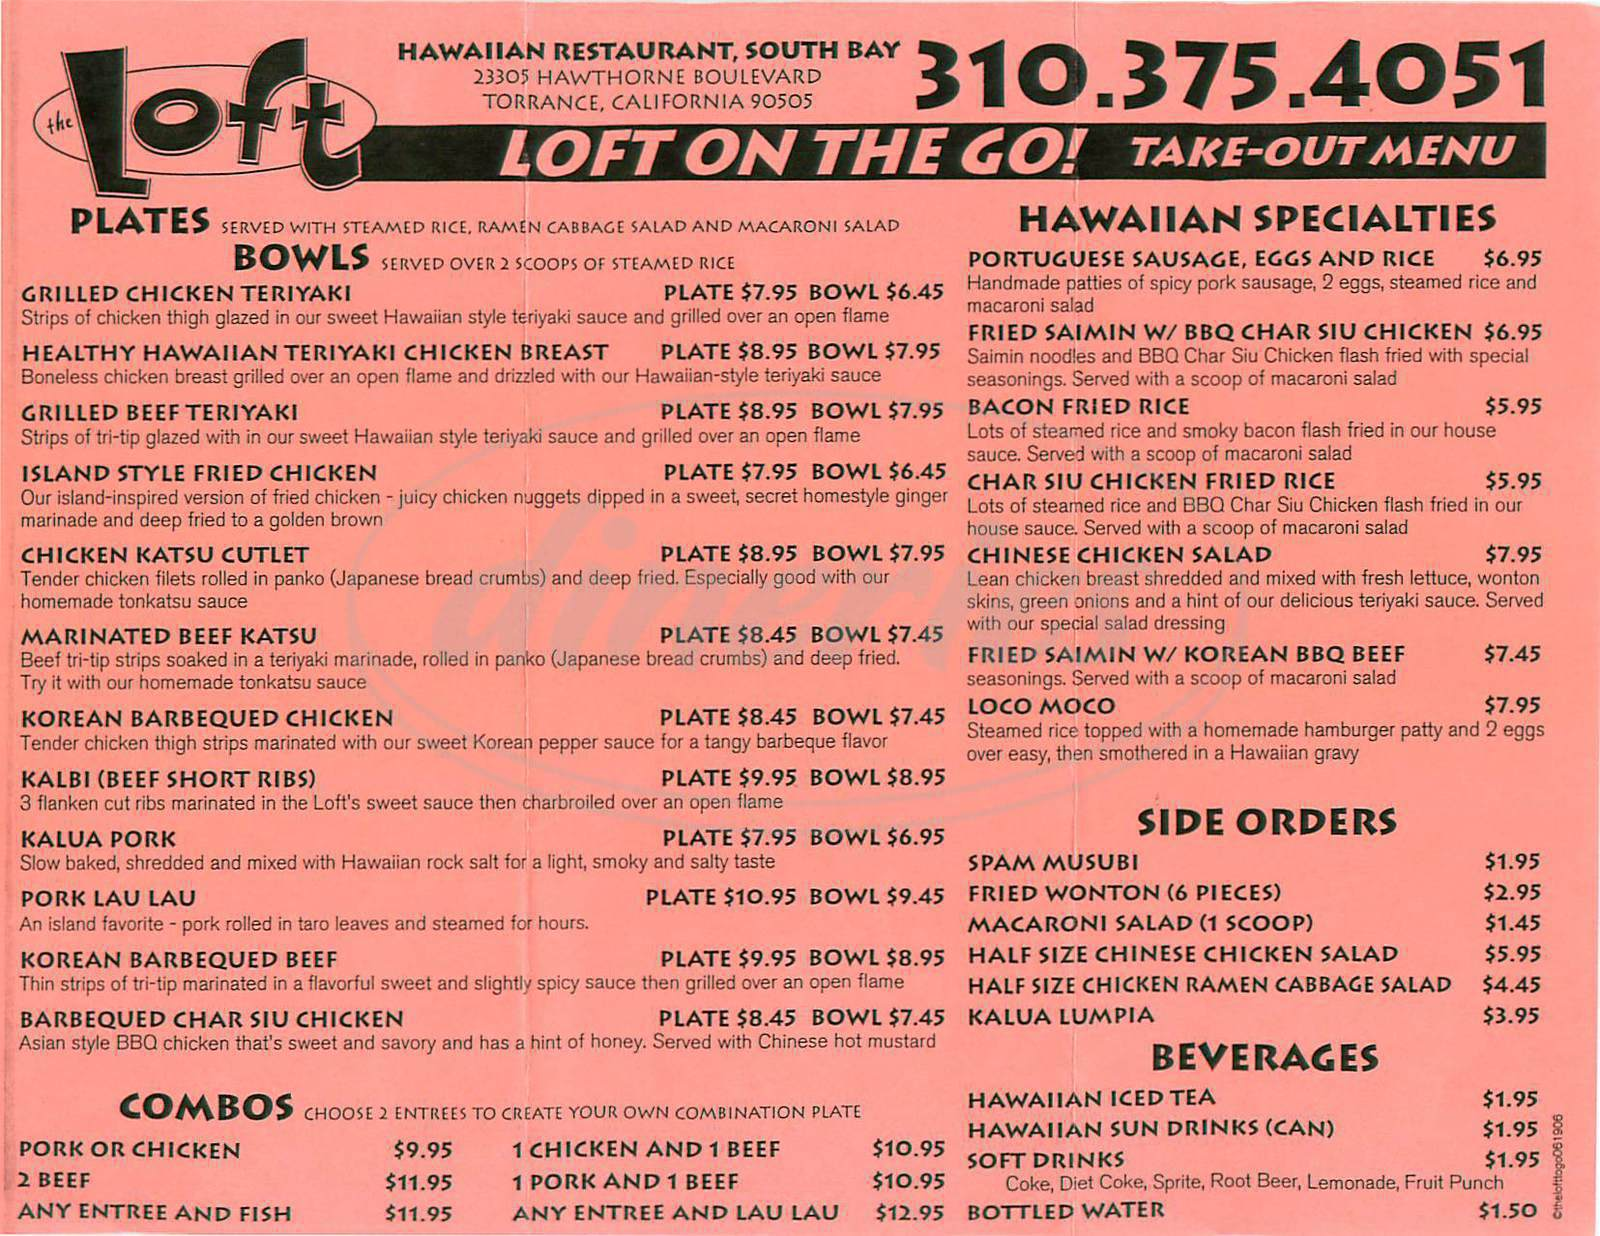 menu for The Loft Hawaiian Restaurant